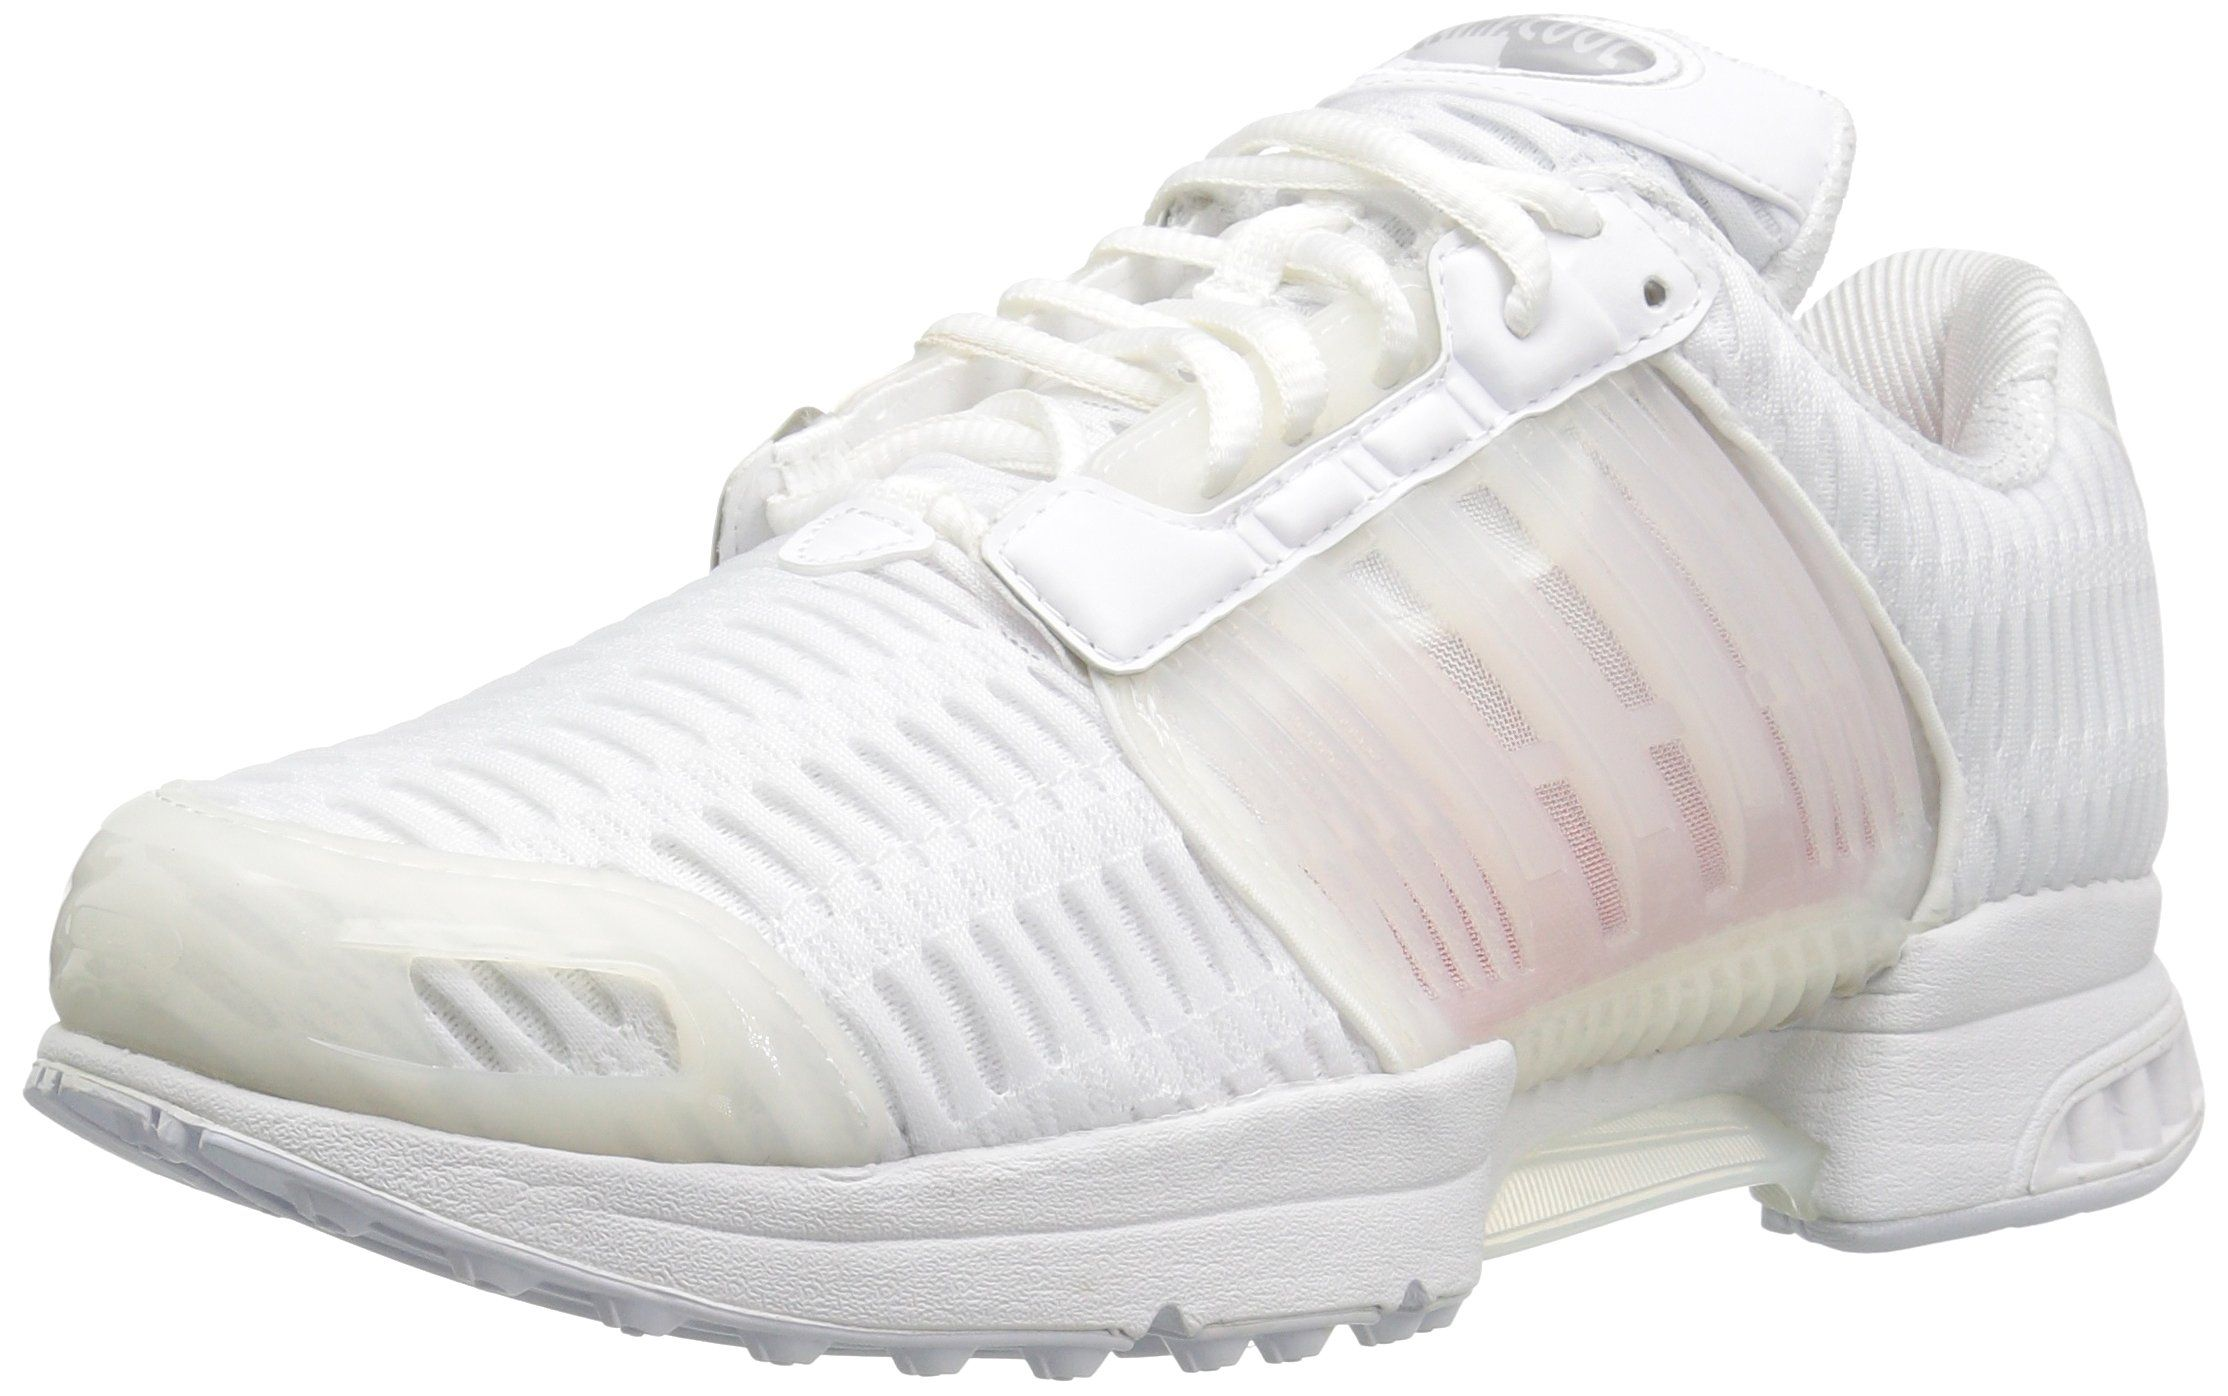 competitive price 6b894 2275d adidas Originals Mens Shoes  Climacool 1 Fashion Sneakers, White  White   White,